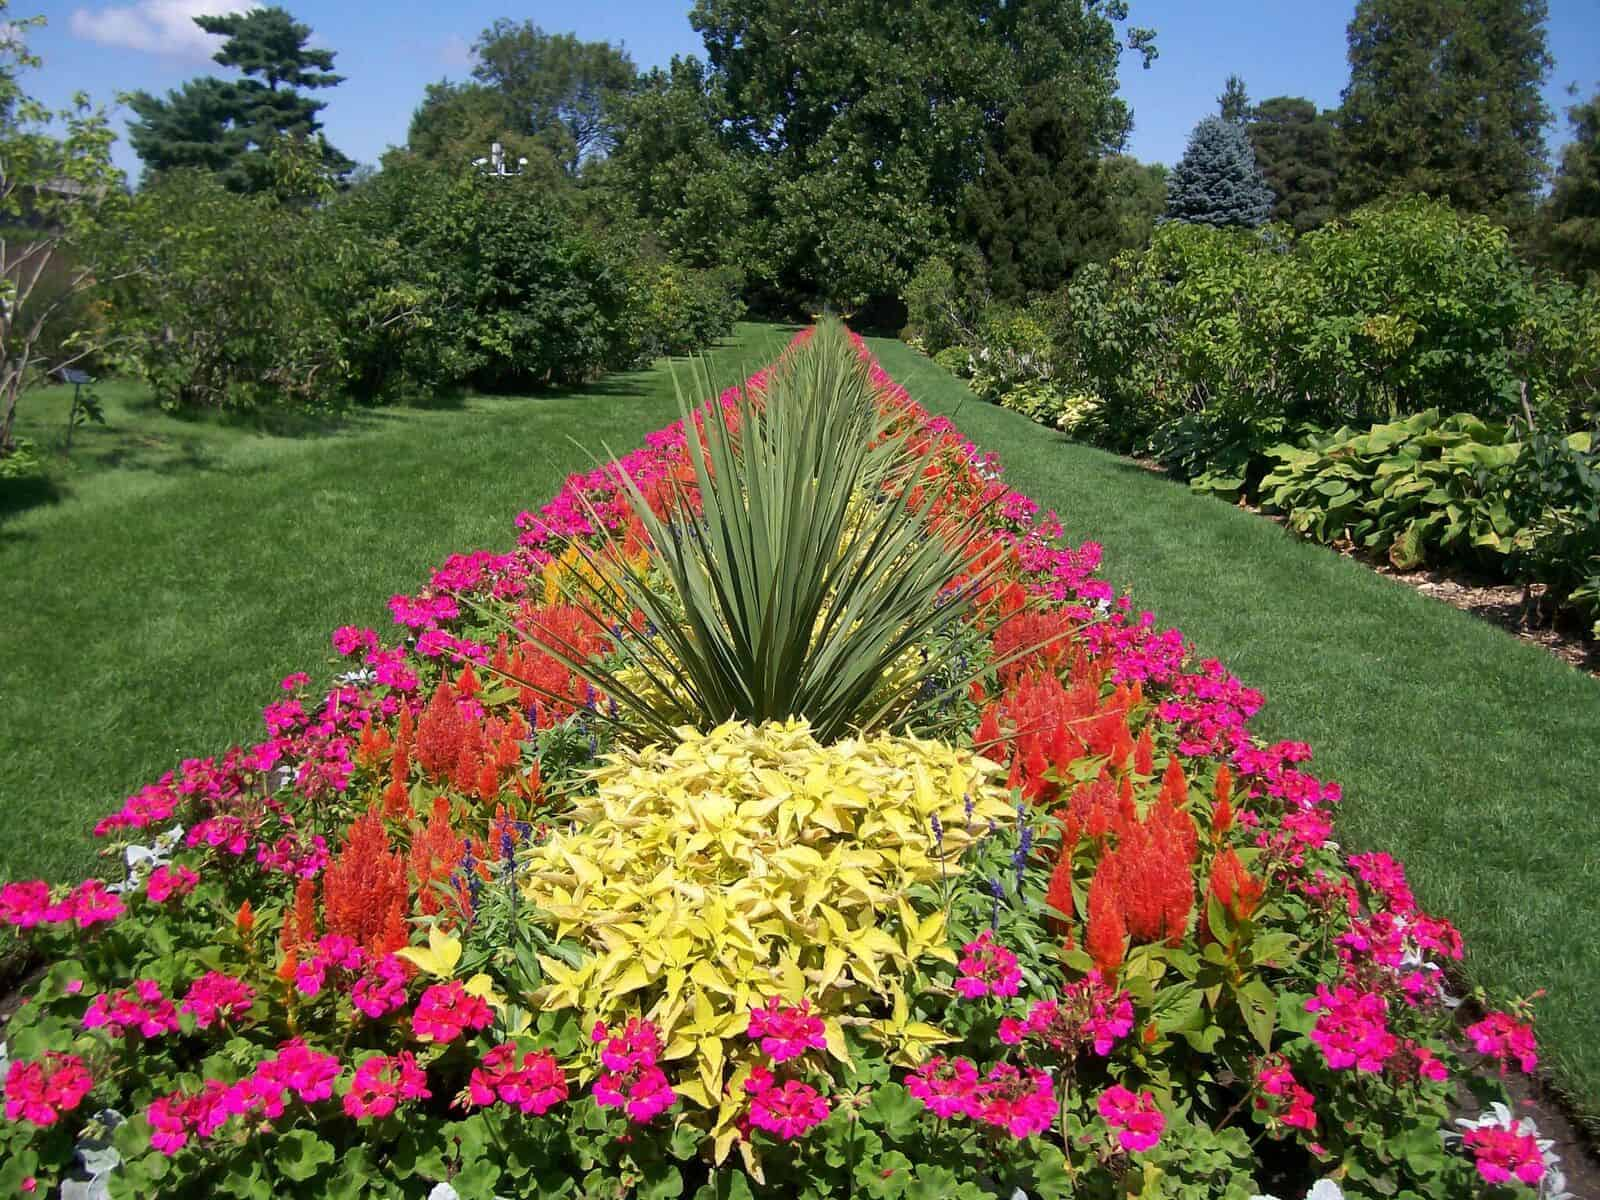 Where Can I Find an AAS Display Garden - All-America ...